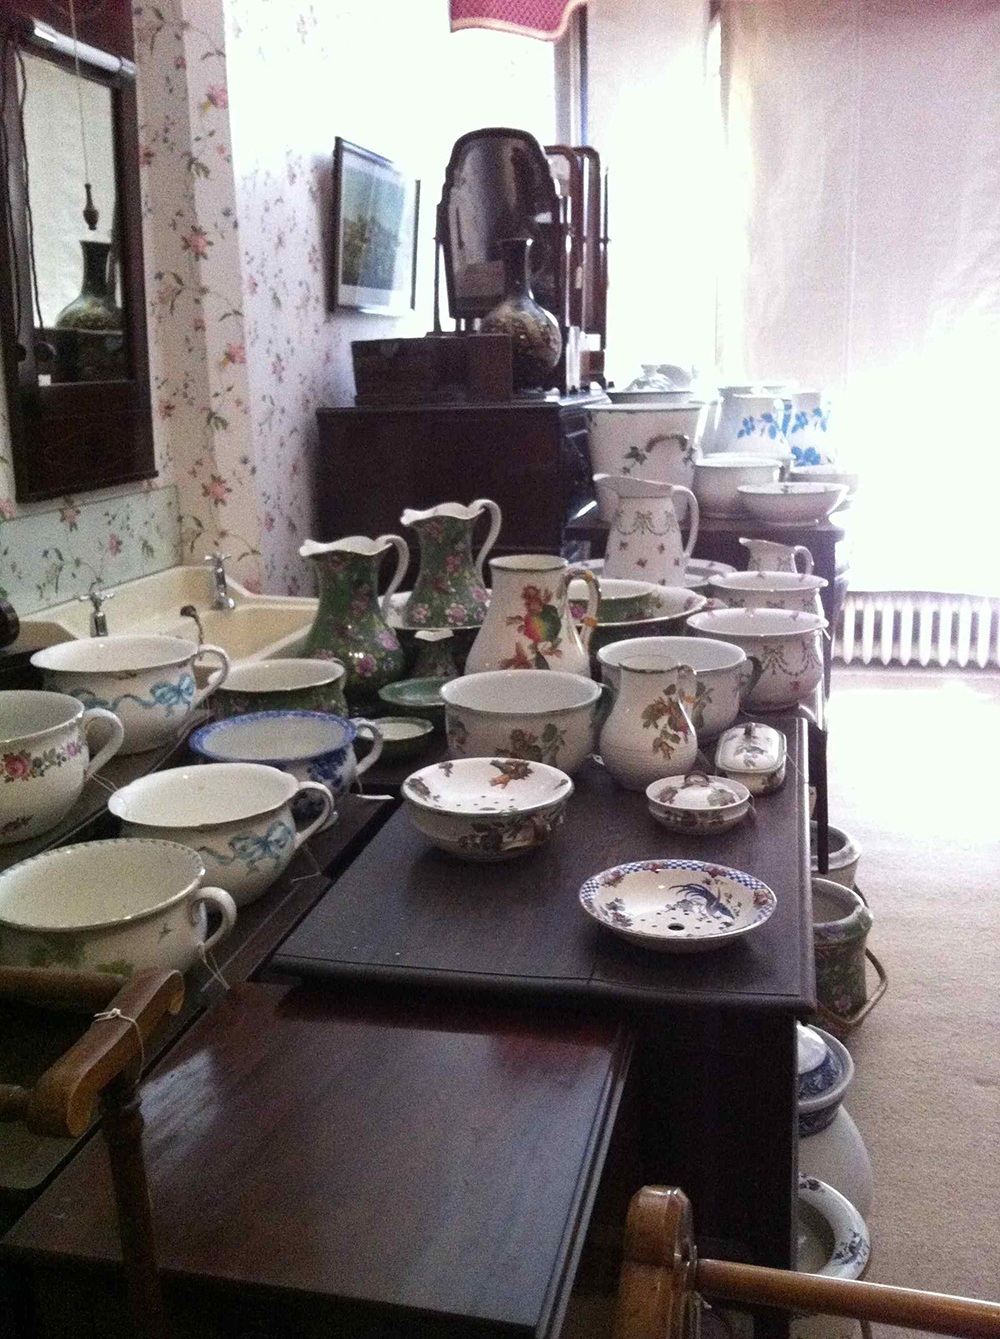 chamber pots, pitchers, and bowls